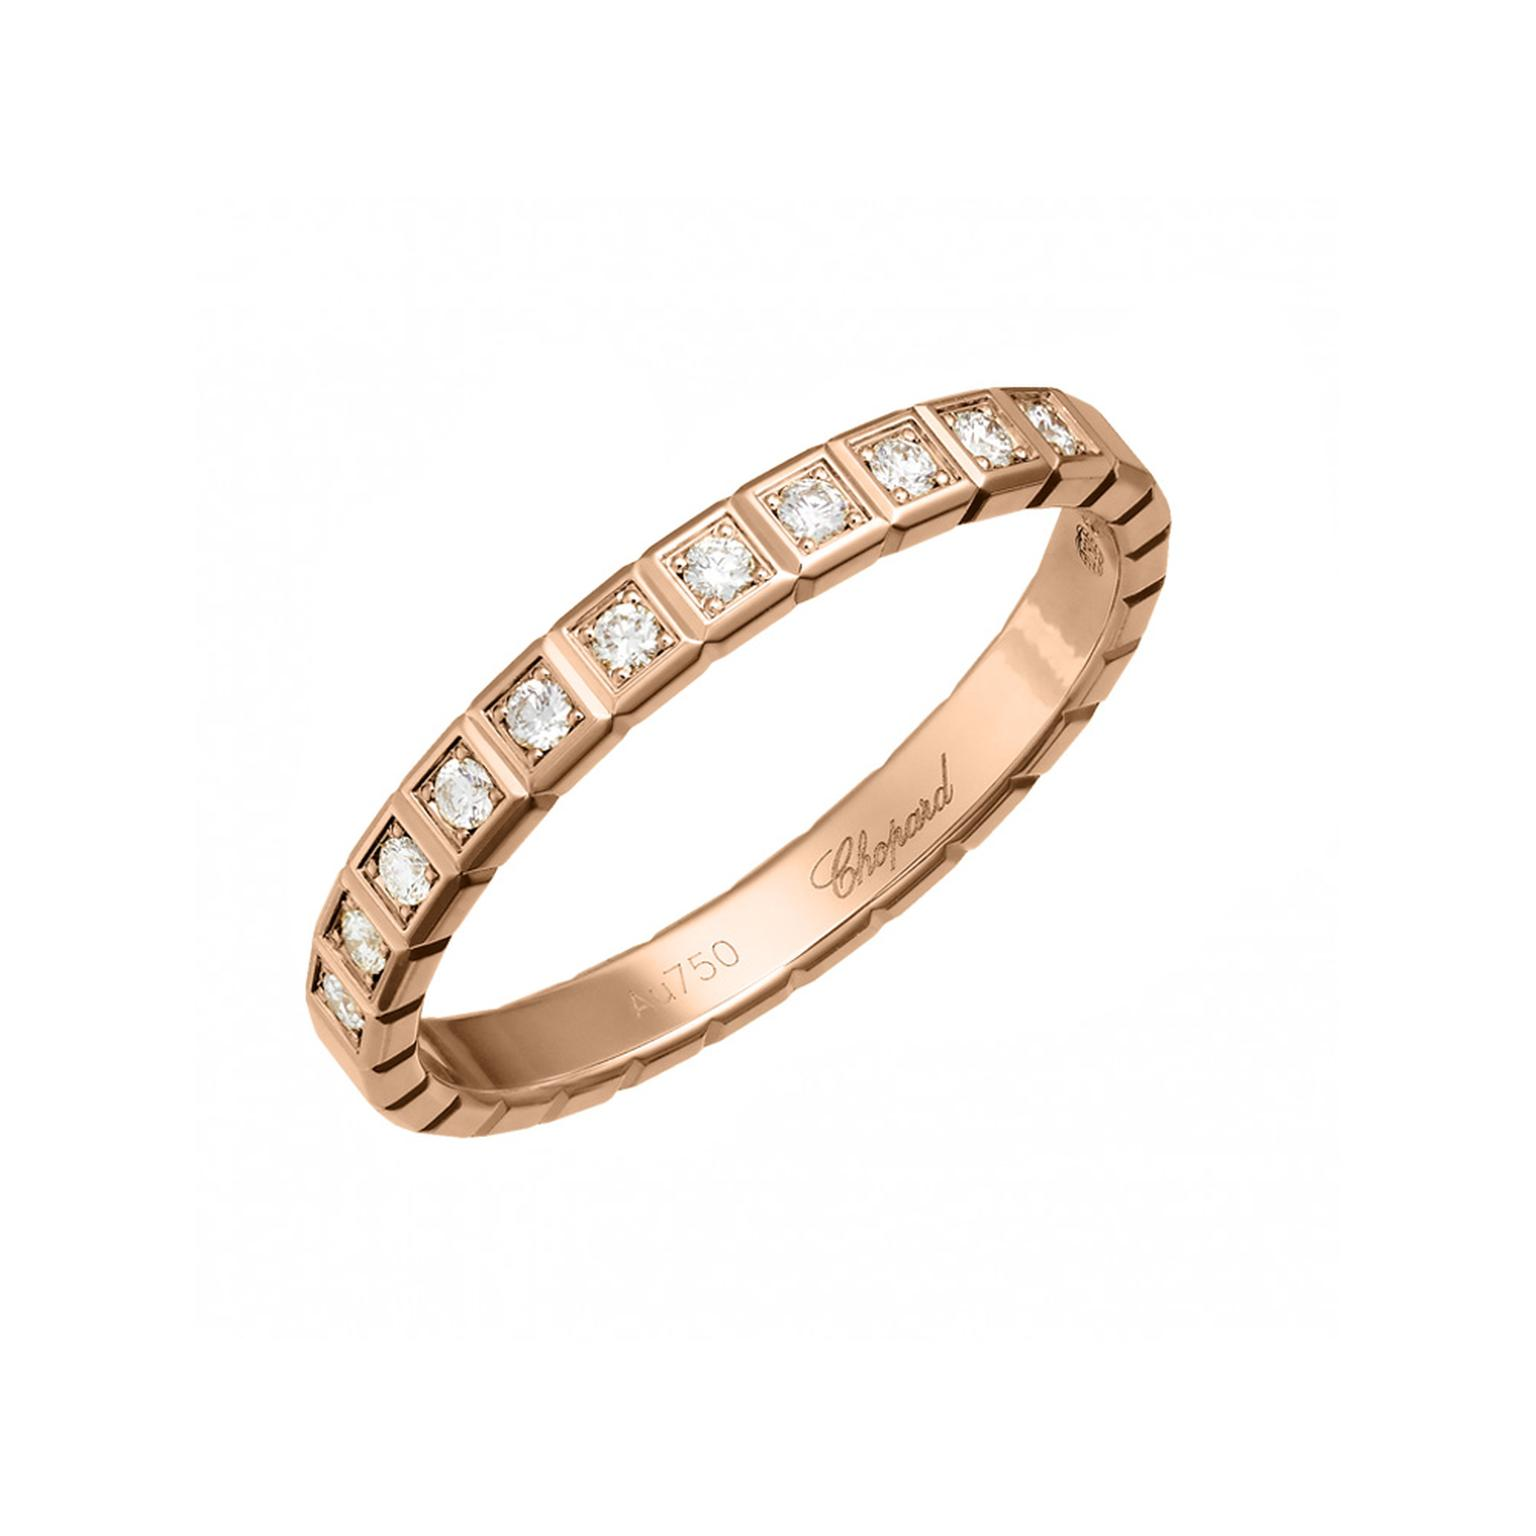 Chopard rose gold and diamond wedding band